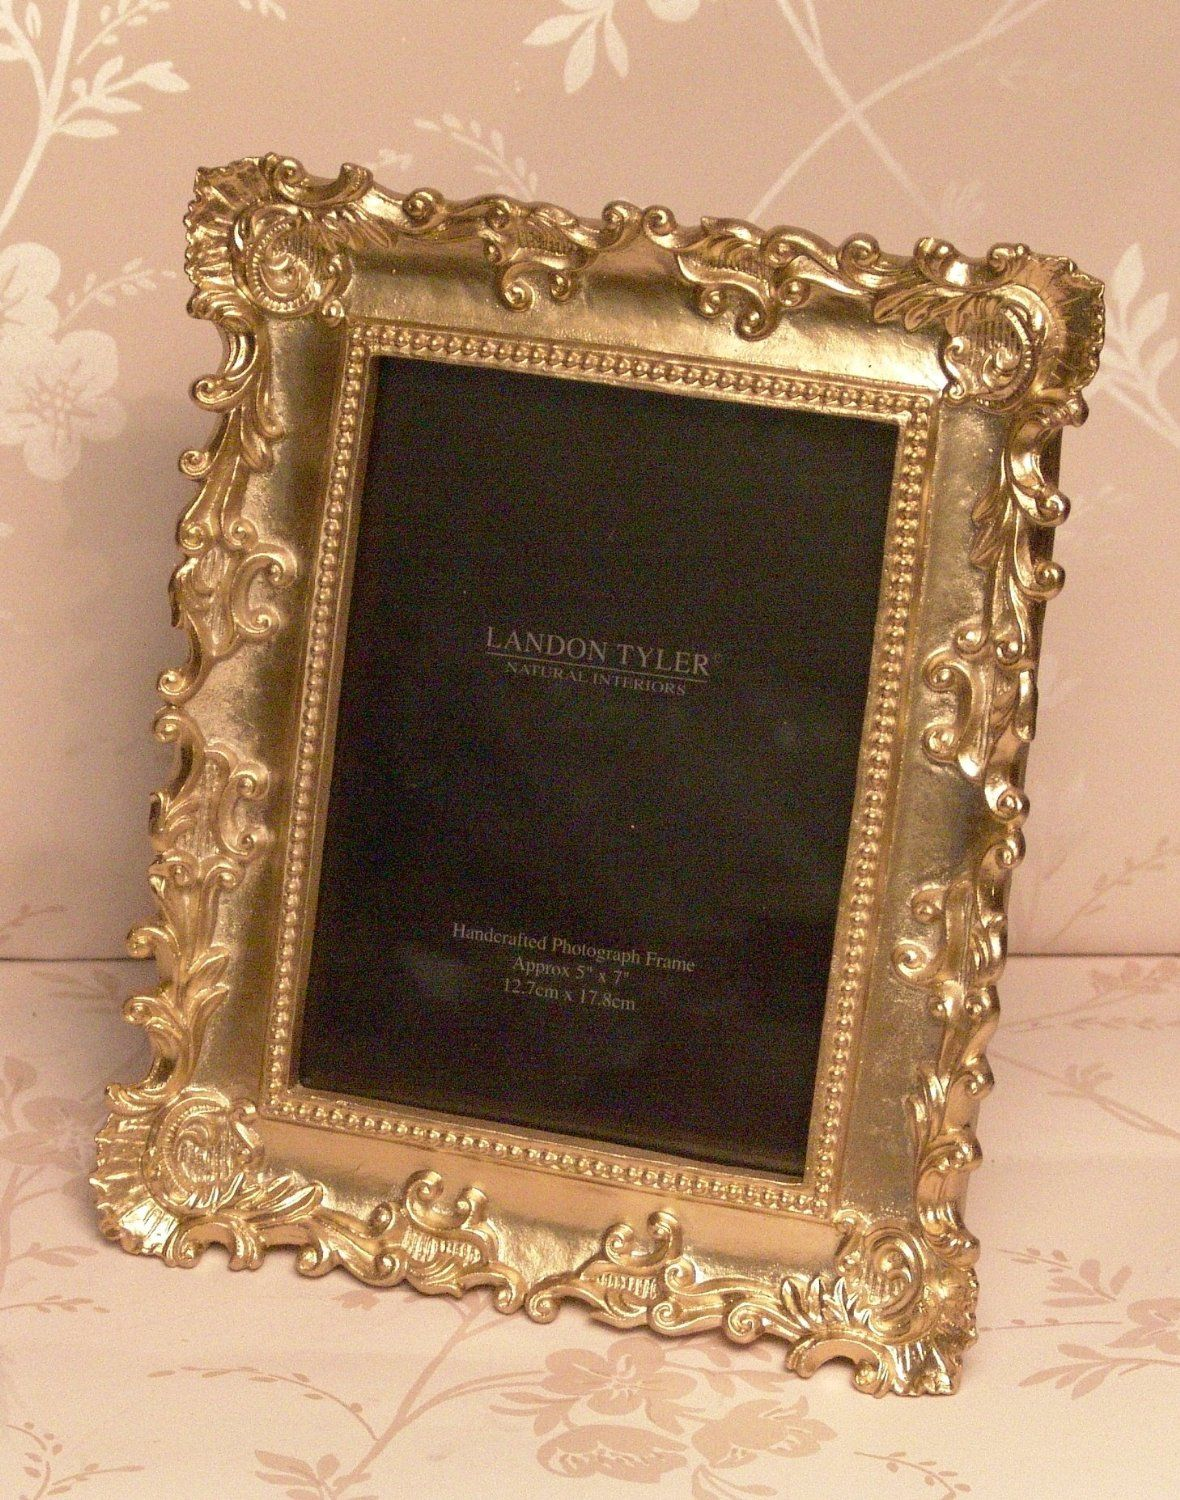 14 99 Vintage Style Gold Ornate Baroque 5 X 7 Photo Picture Frame Freestanding Amazon Co Uk Kitchen Home Shabby Chic Frames Frame Photo Picture Frames